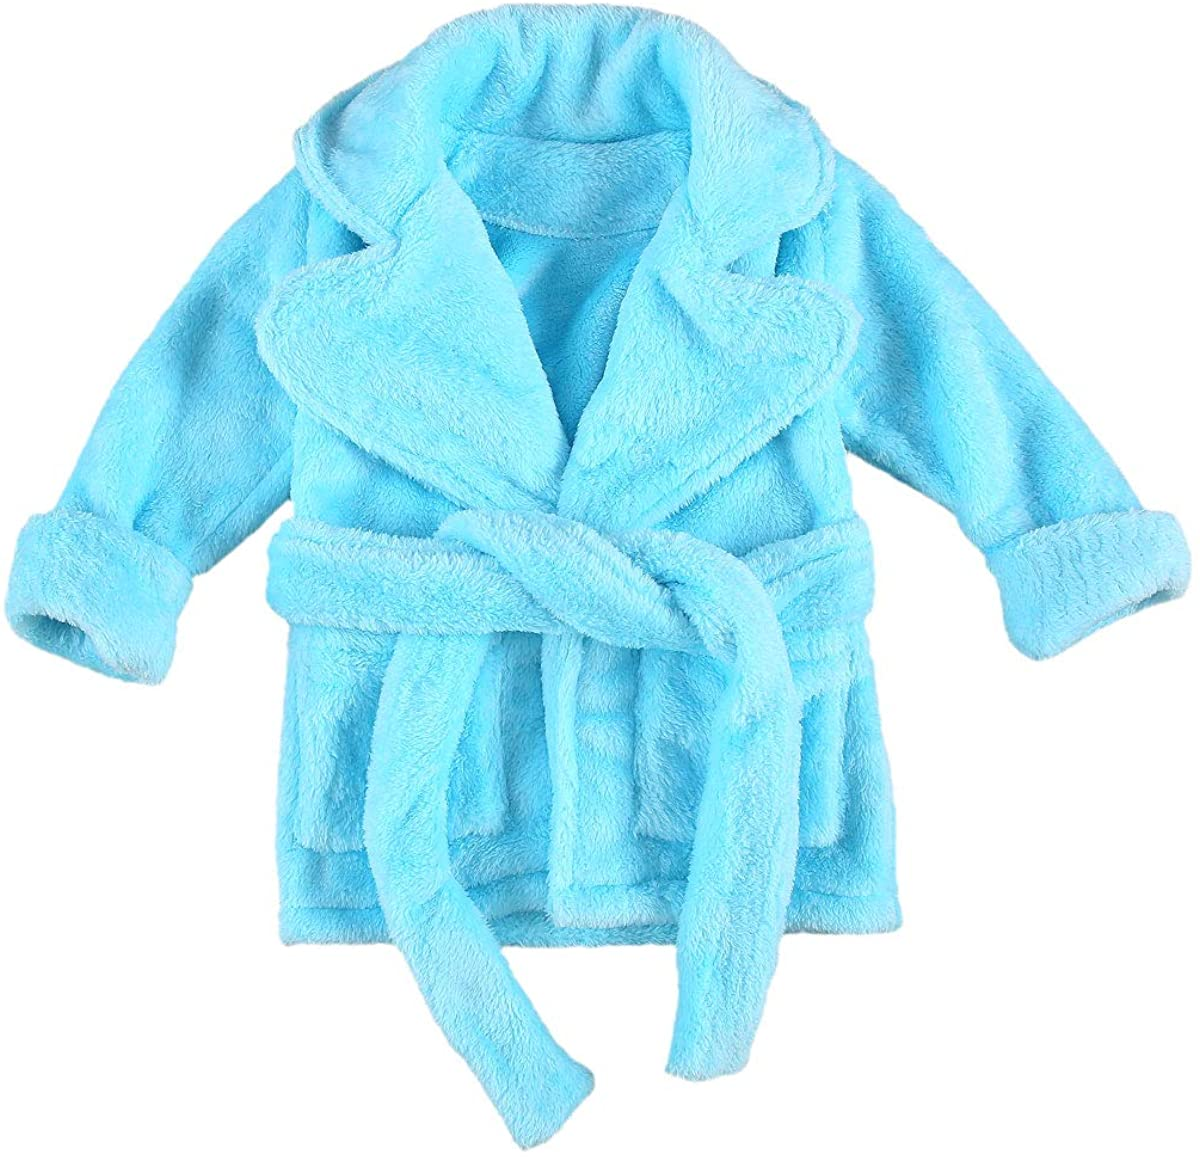 Infant Toddler Baby Girl Flannel Soft Bathrobes Kimono Robe Pajamas Sleepwear Nightgowns with Belt